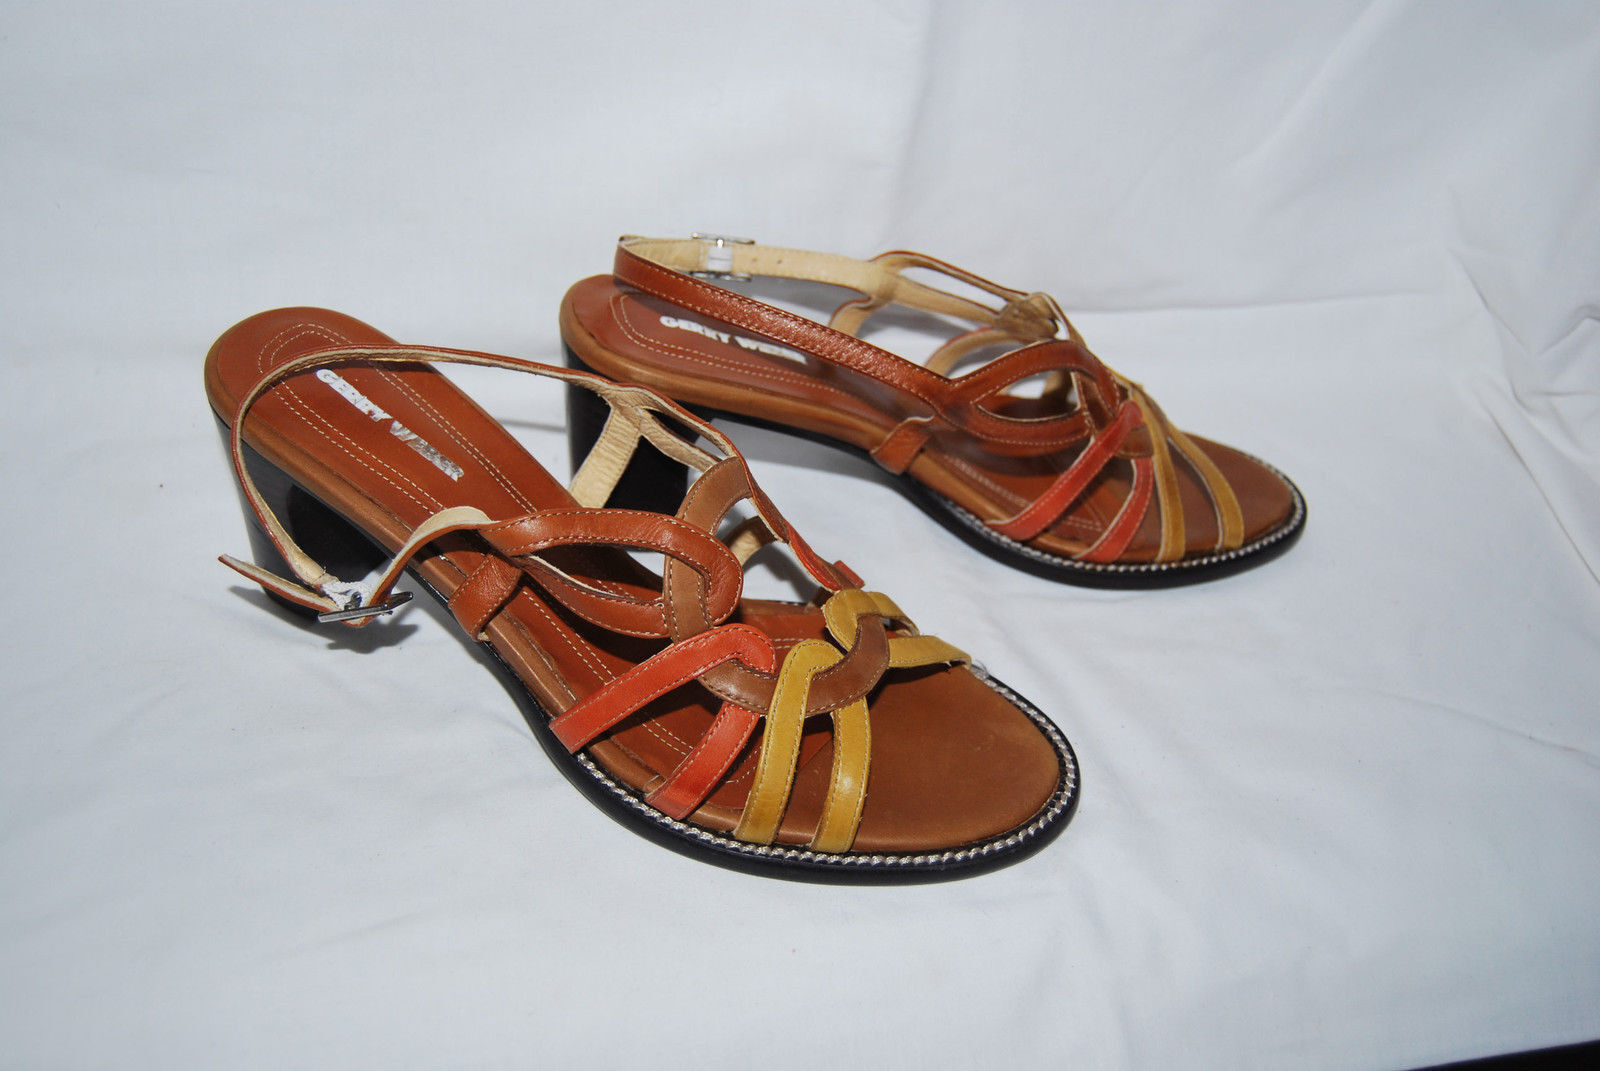 Gerry Weber Size 39 Leather New with Tags 69,- Sandals Sandal Brown Tones ms78